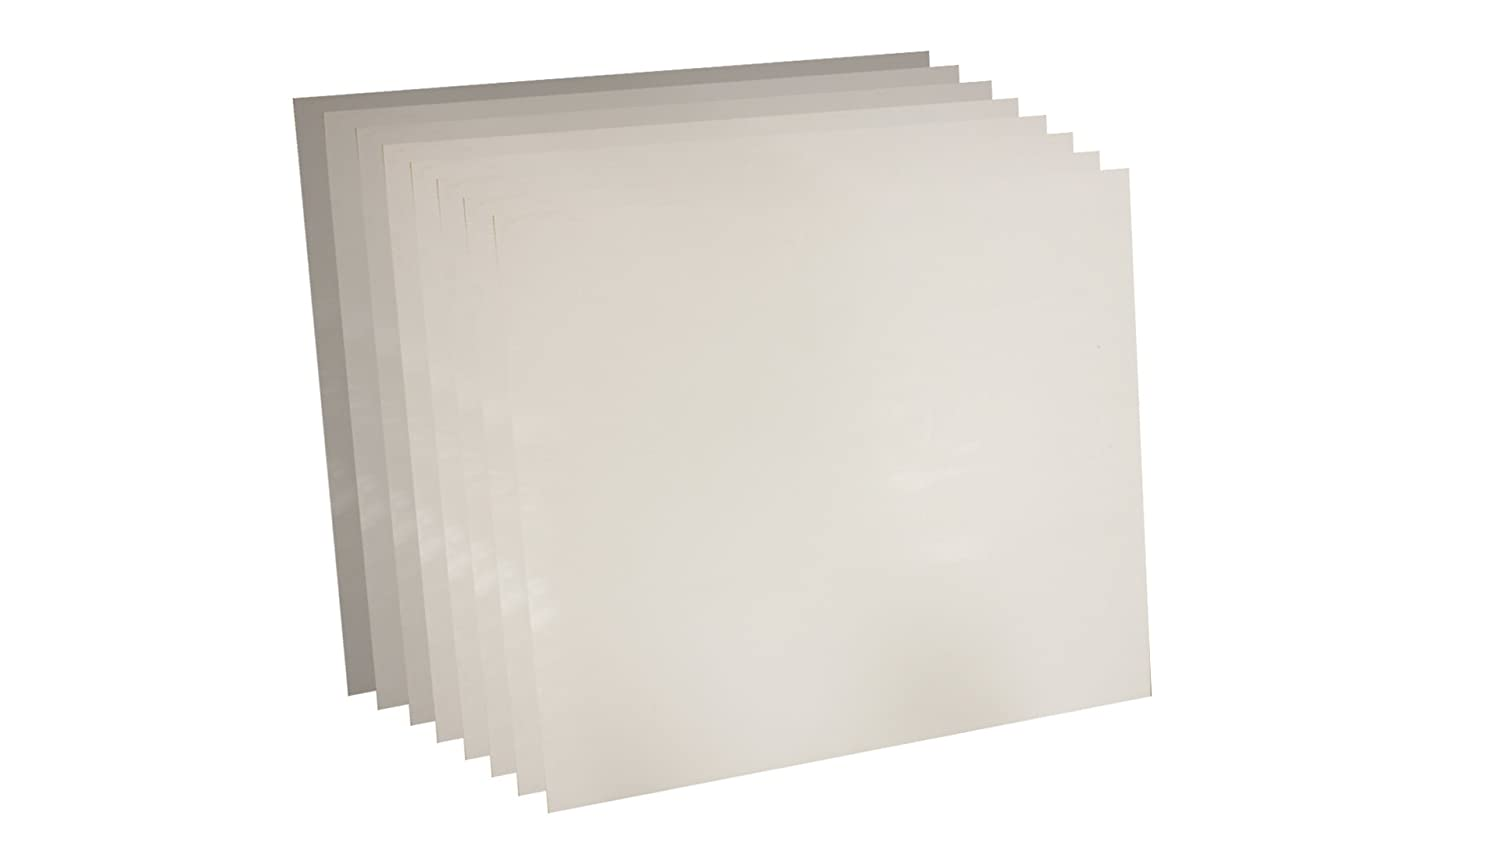 Pack of 8 12 x 12 1//64 Thick Sterling Seal 7530.015612x12x8 White Virgin Teflon 7530 Sheet